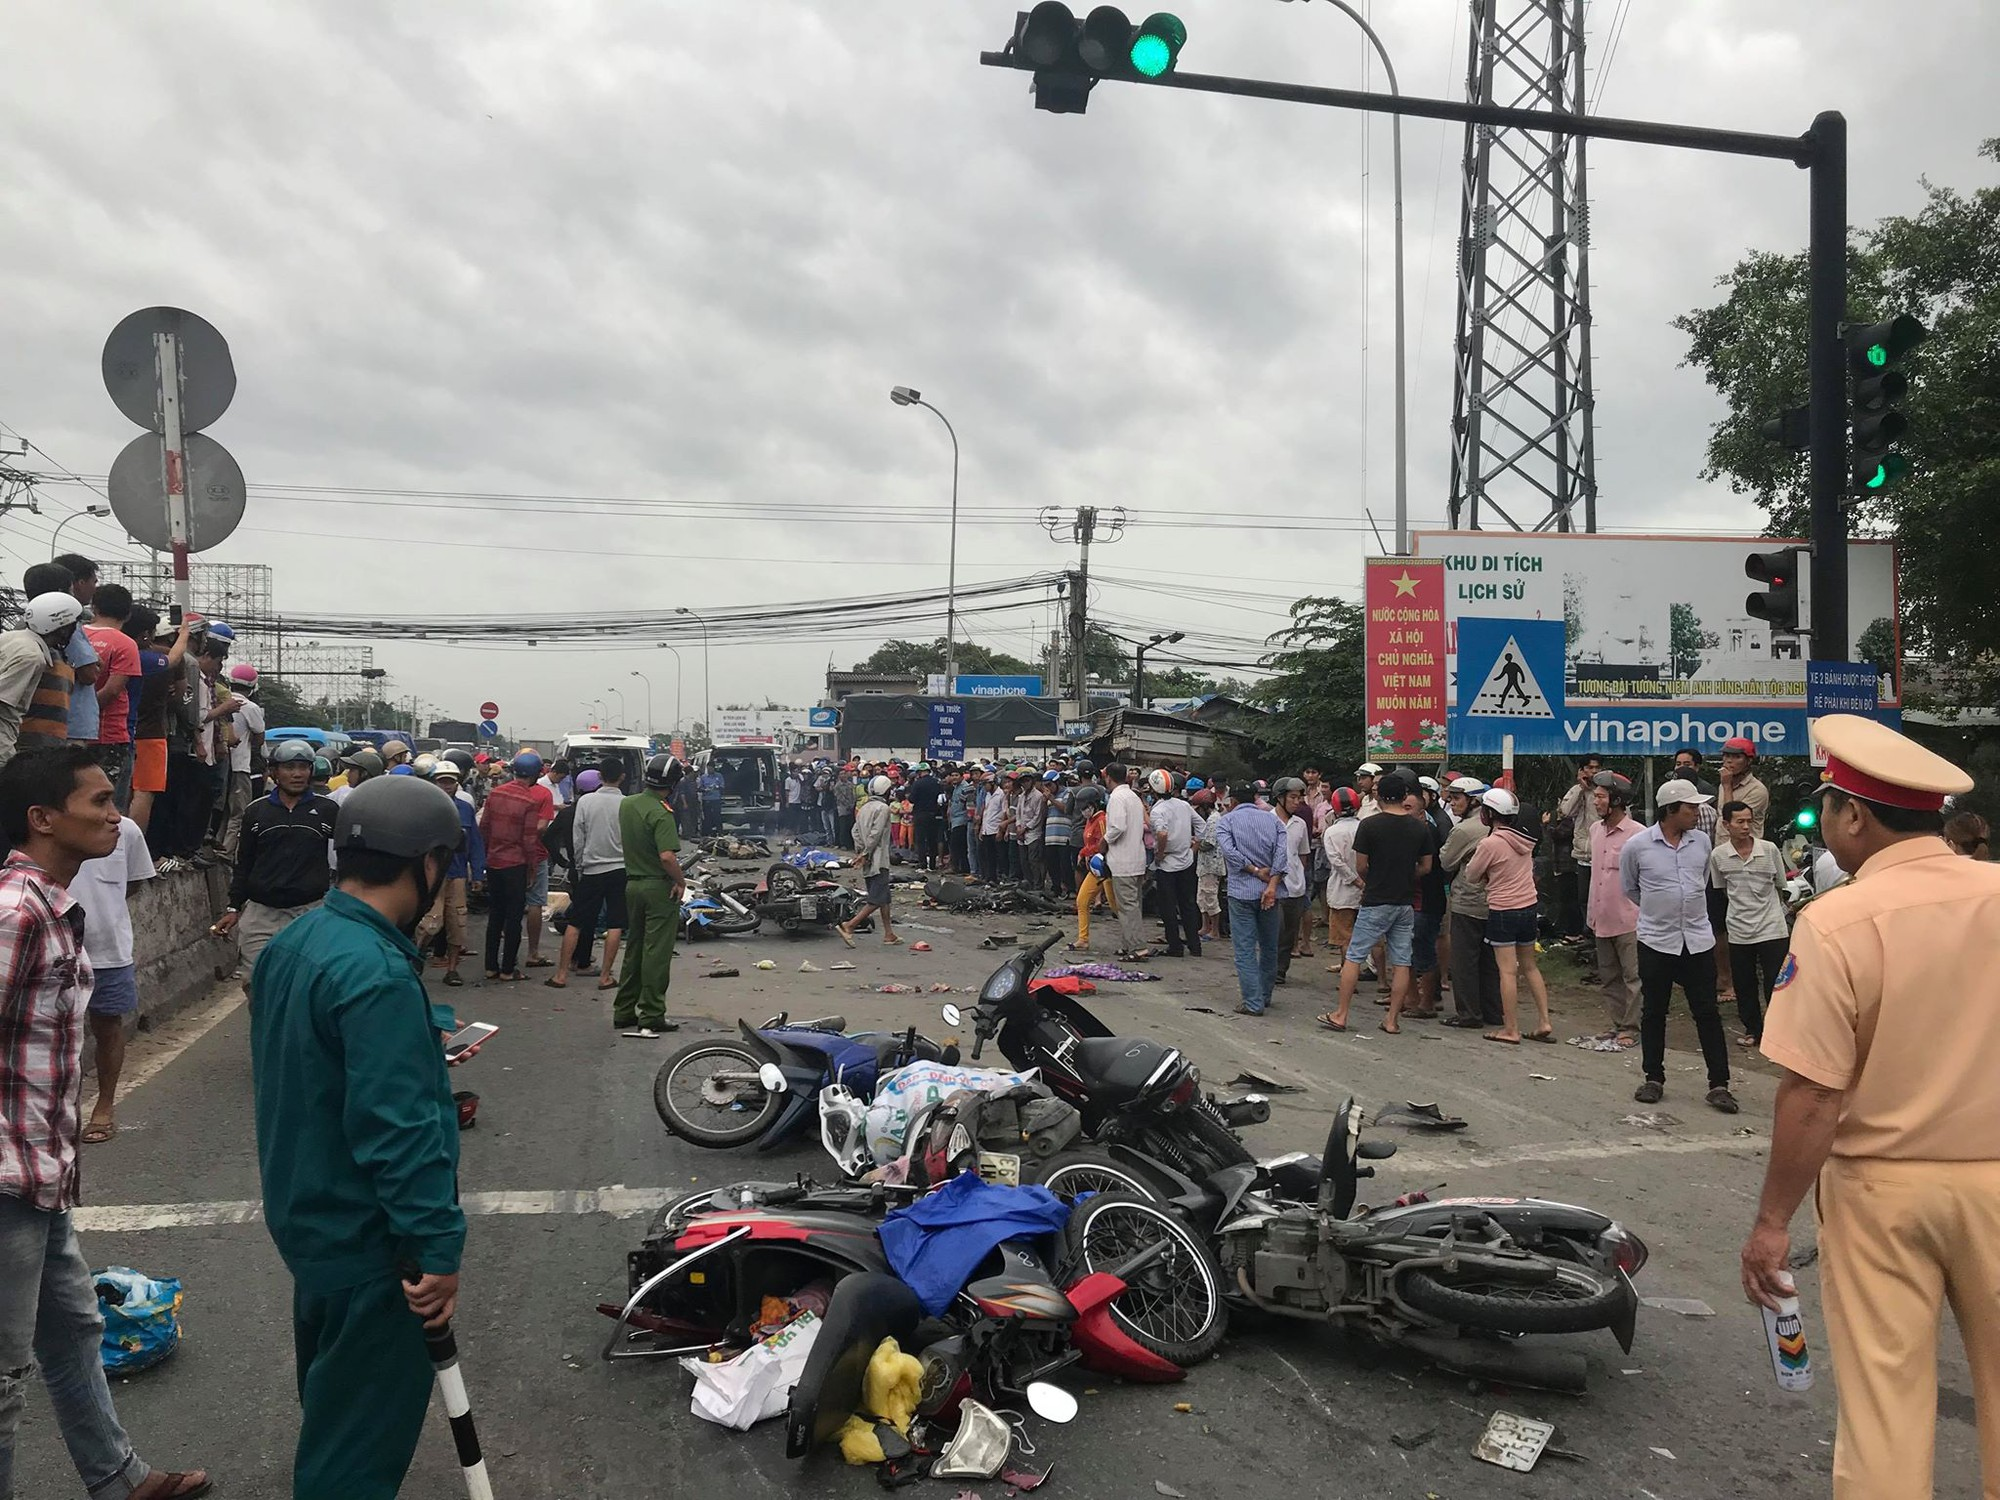 The scene of the accident on in Ben Luc District, Long An Province on January 2, 2019. Photo: Son Lam / Tuoi Tre